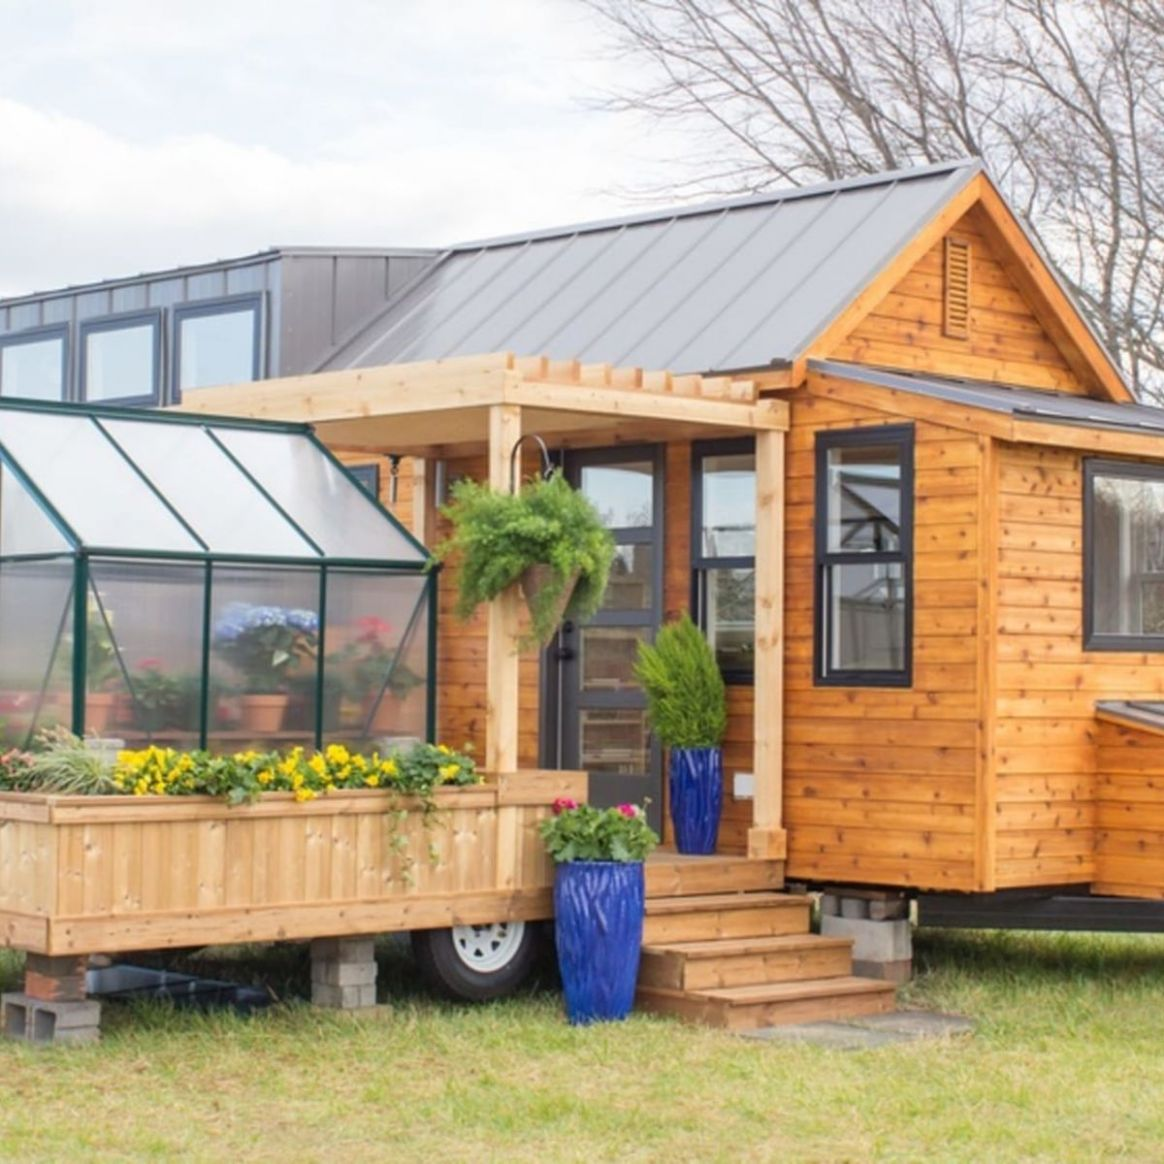 The Elsa - Tiny House for Sale in Taylors, South Carolina - Tiny House  Listings - tiny house listings